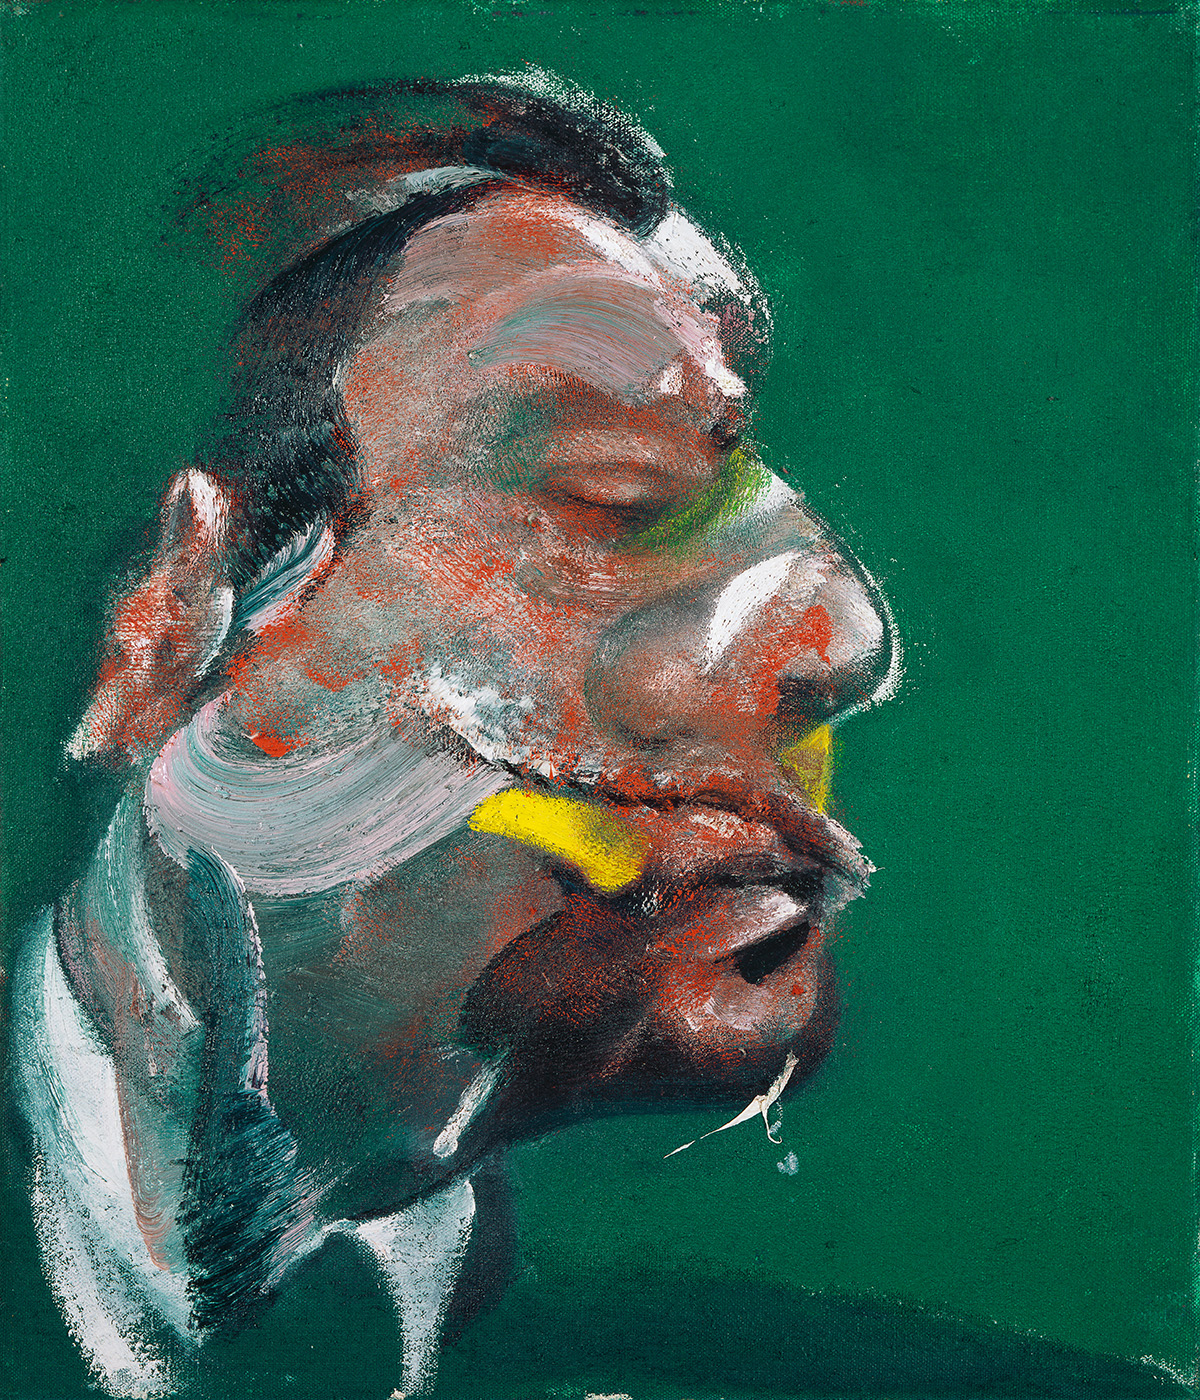 Francis Bacon, Study for Head of George Dyer, 1967. Oil on canvas. CR number 67-06. © The Estate of Francis Bacon / DACS London 2020. All rights reserved.